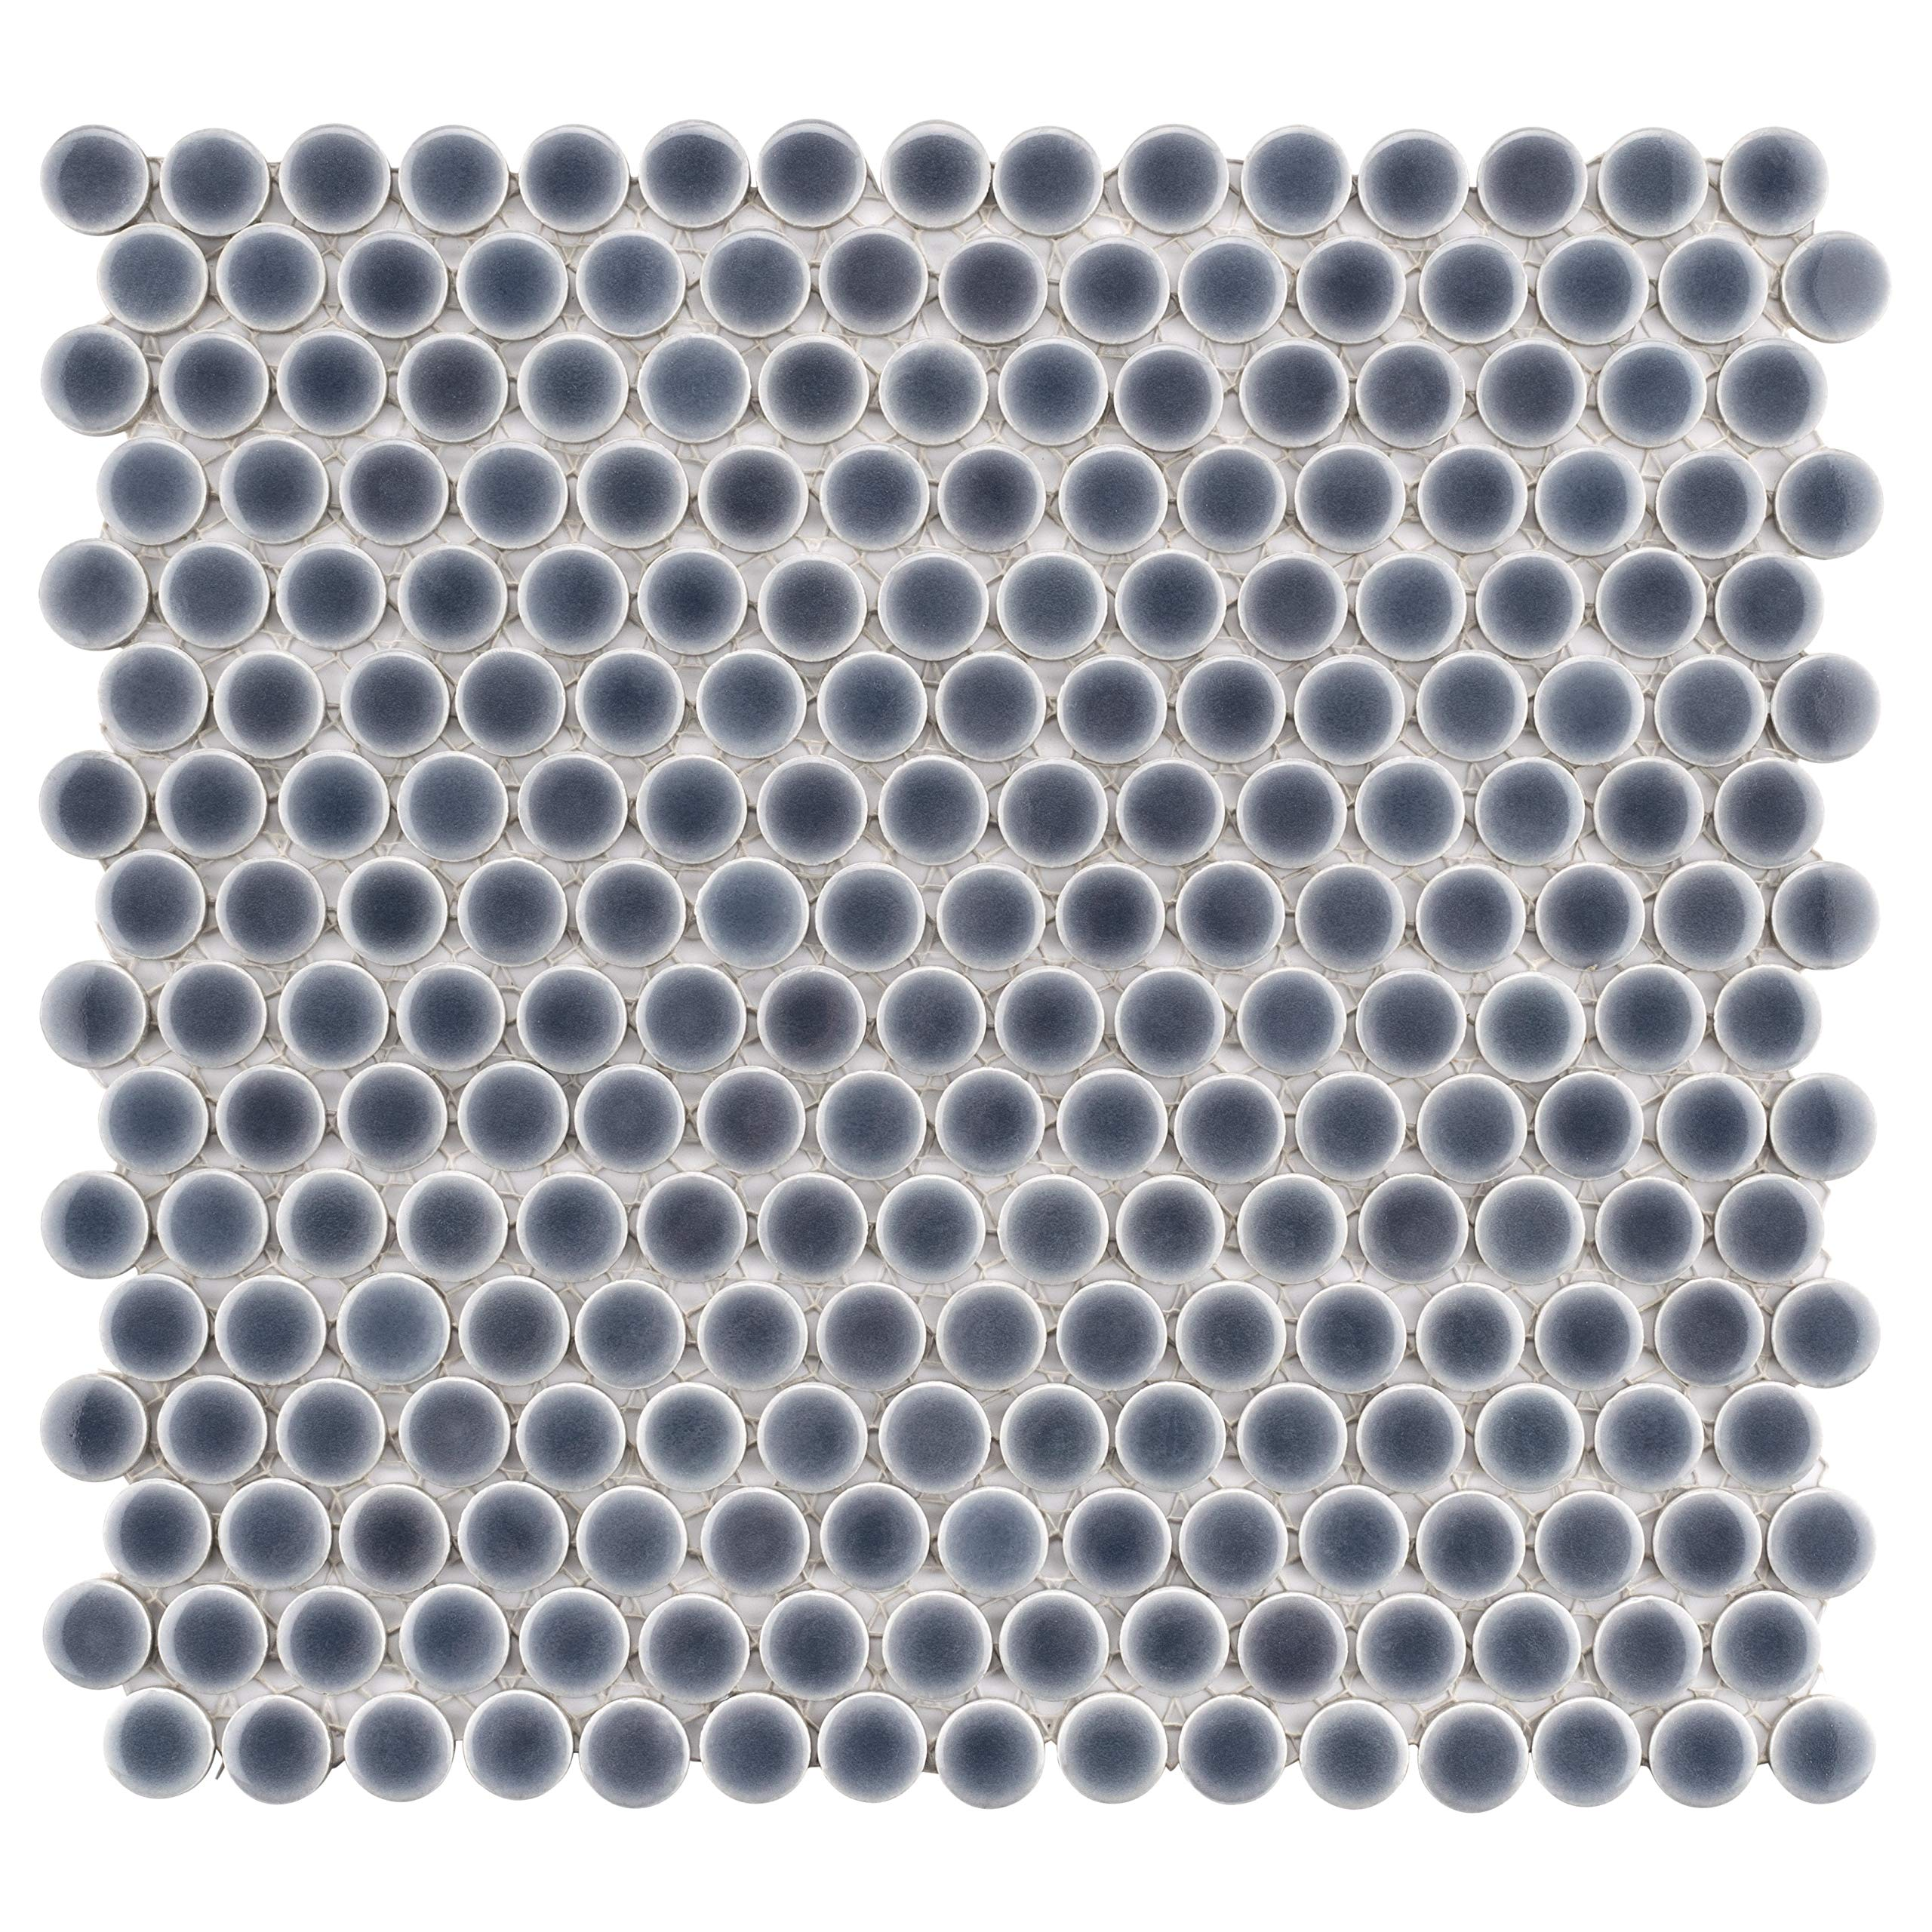 SomerTile FKOMPRG2 Penny Porcelain Mosaic Floor and Wall Tile, 12'' x 12.625'', Imperial Grey